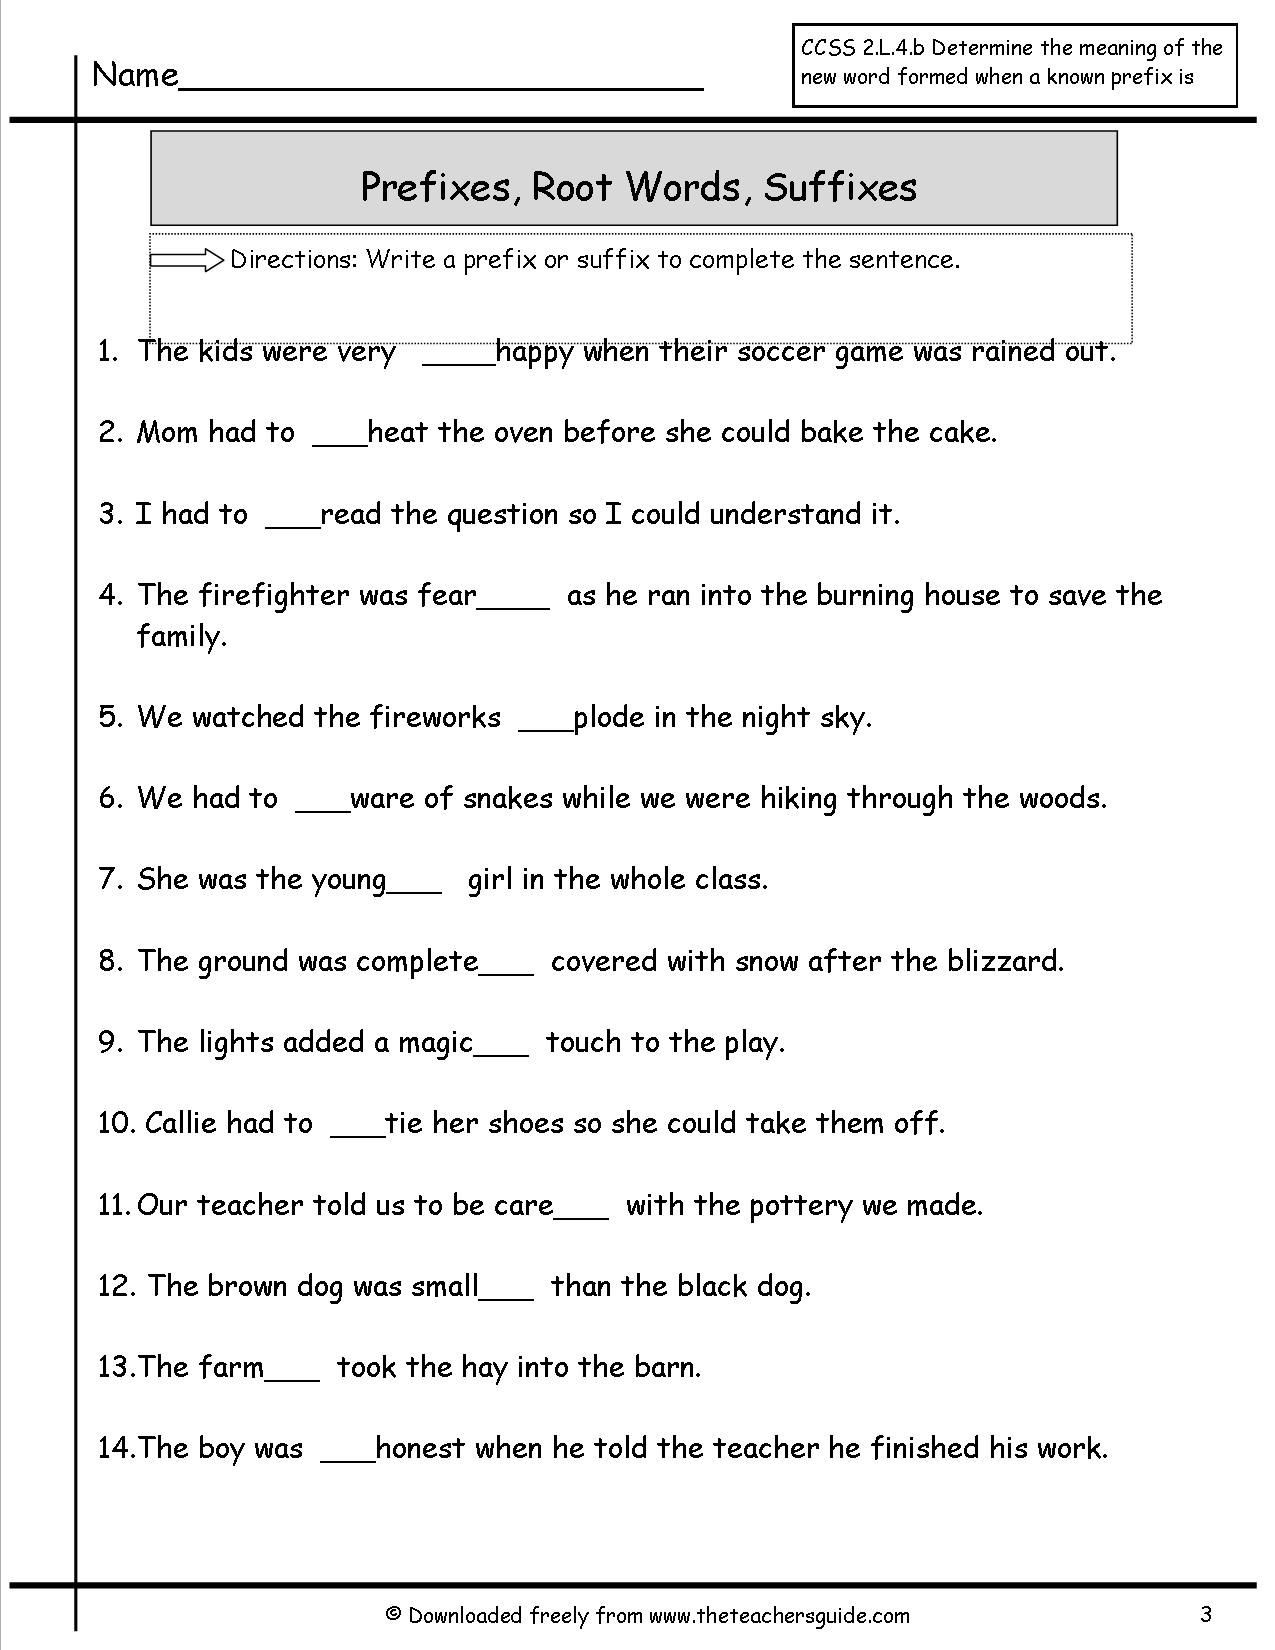 Prefix Suffix Worksheets 3rd Grade Prefixes Suffixes Worksheet